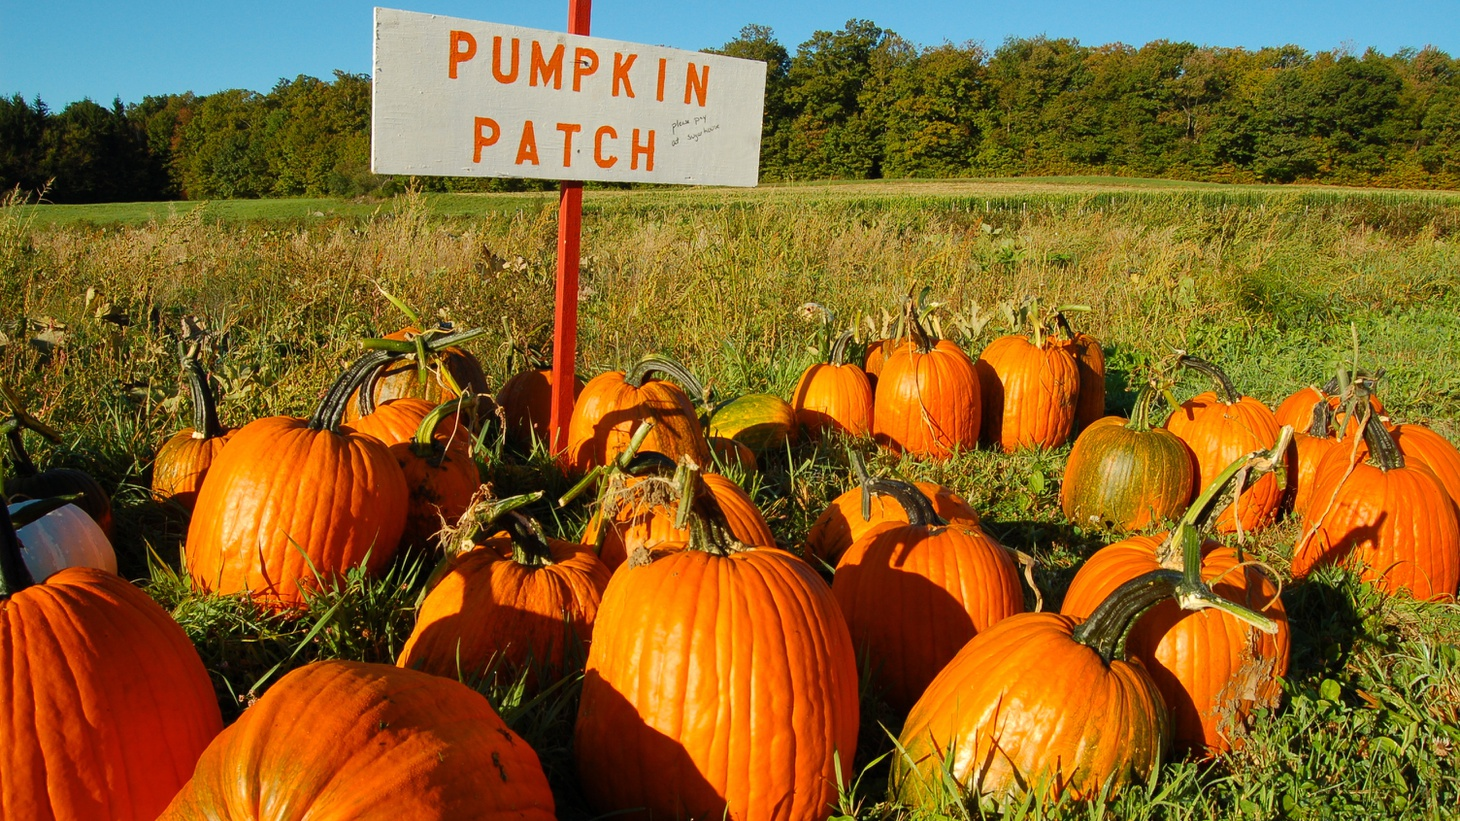 If you want to find the perfect pumpkin this season, check out Mr. Bones Pumpkin Patch in Culver City or Tina's Pumpkin Patch in Sherman Oaks.